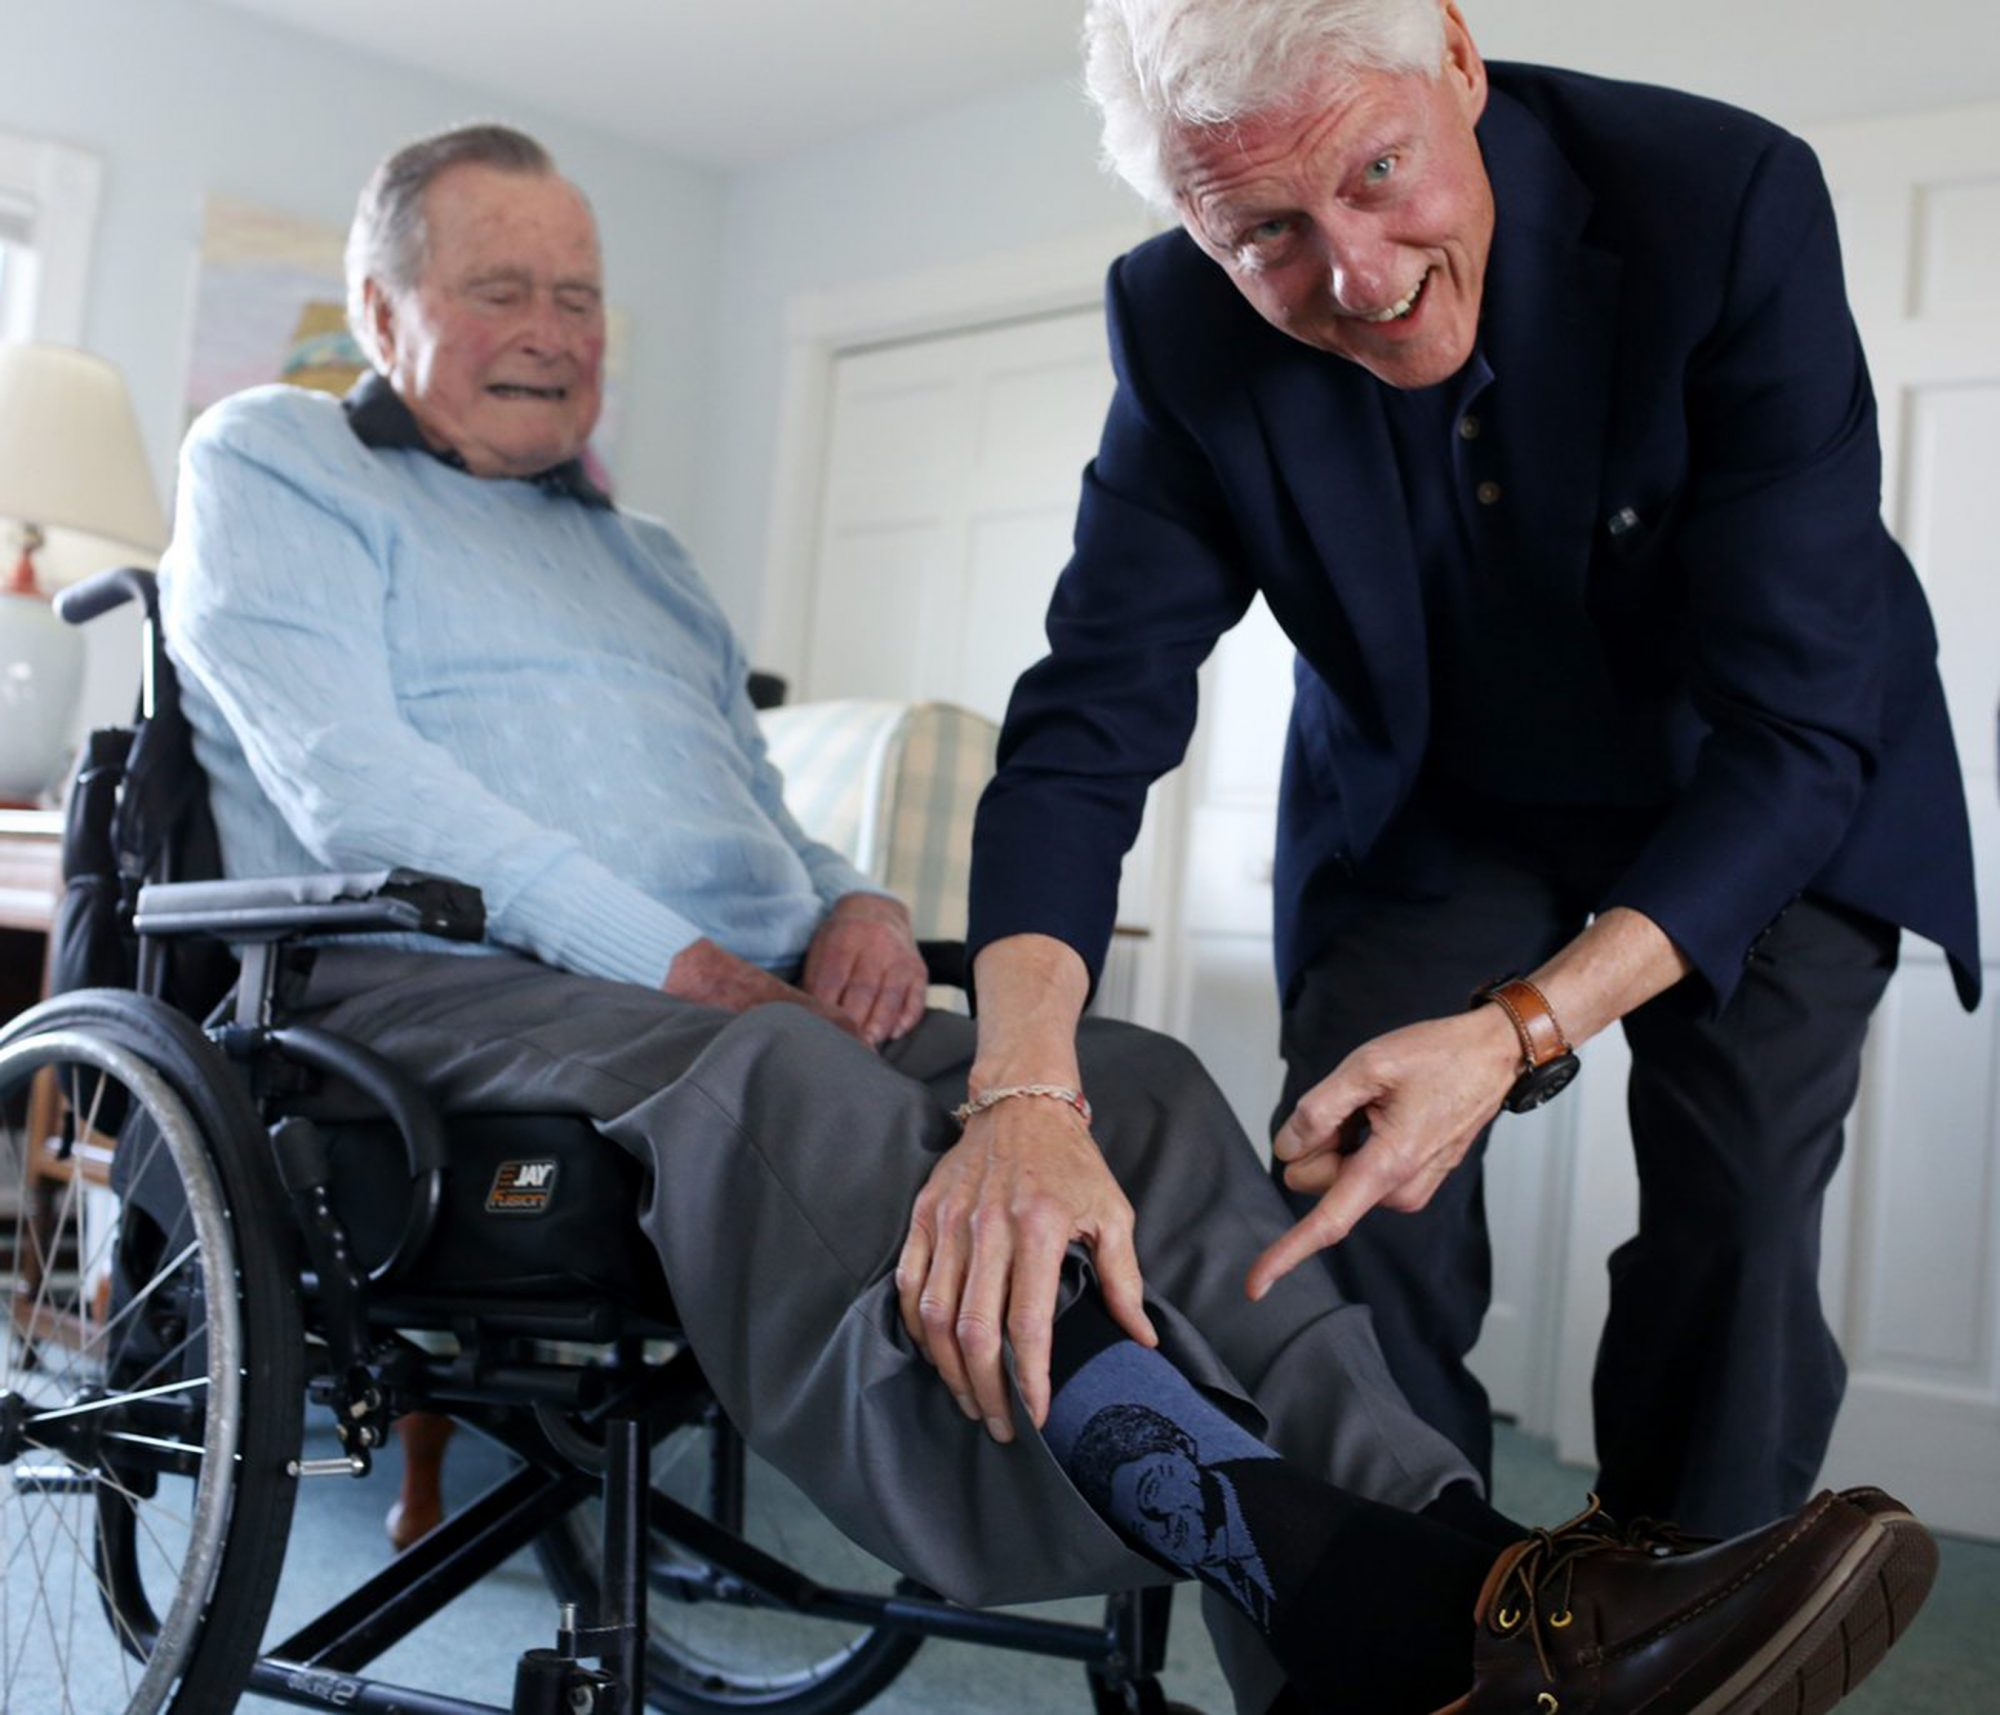 Americans Remember George H.W. Bush with Touching #SocksForBush Social Media Campaign bill-clinton-george-hw-bush